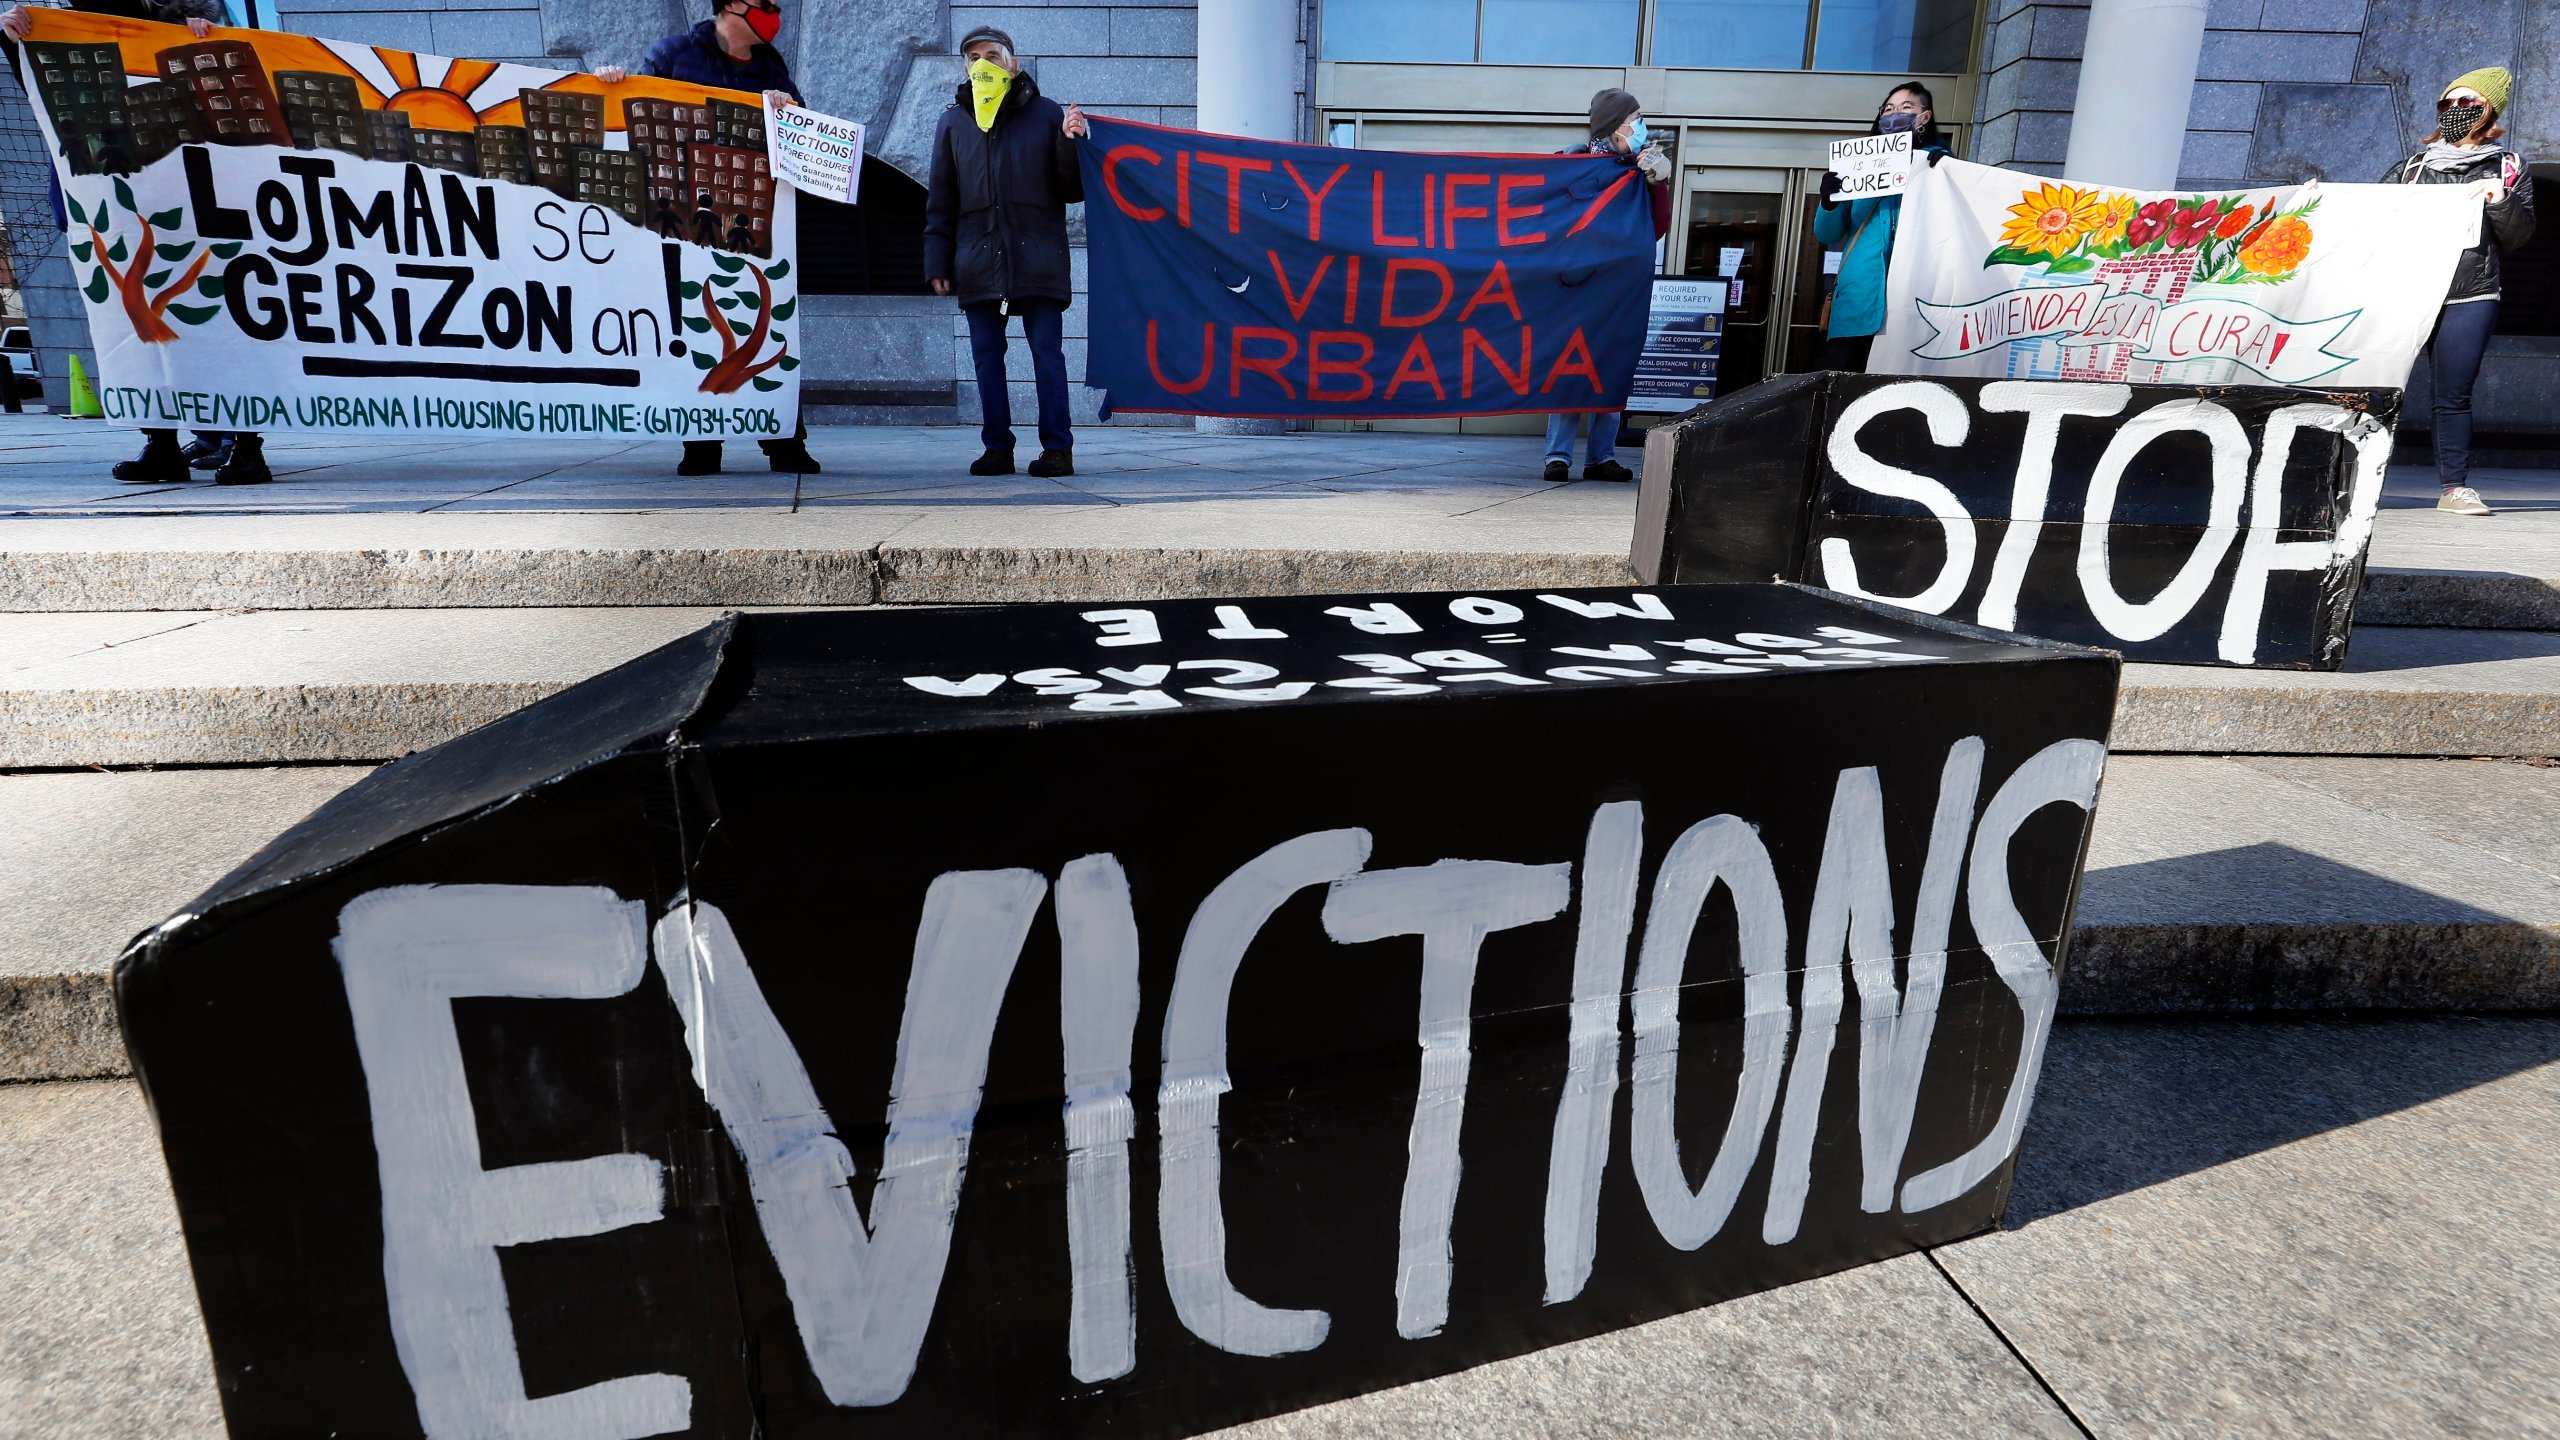 """In this Jan. 13, 2021, file photo, tenants' rights advocates demonstrate in front of the Edward W. Brooke Courthouse in Boston. A federal judge is refusing landlords' request to put the Biden administration's new eviction moratorium on hold, though she made clear she thinks it's illegal. U.S. District Judge Dabney Friedrich on Friday, Aug. 13, said her """"hands are tied"""" by an appellate ruling the last time courts considered the evictions moratorium in the spring. (AP Photo/Michael Dwyer, File)"""